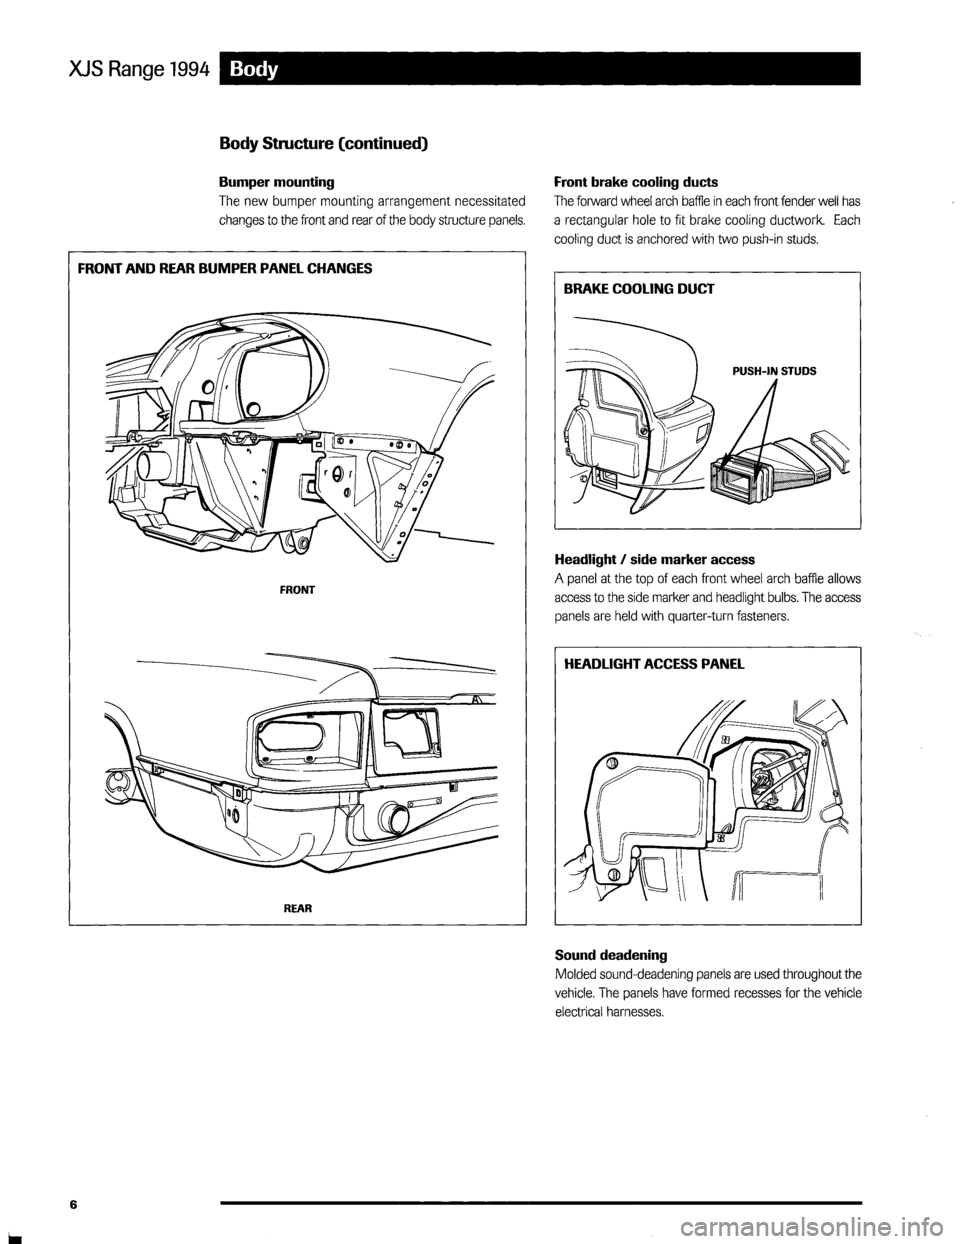 JAGUAR XJS 1994 2.G Update Manual